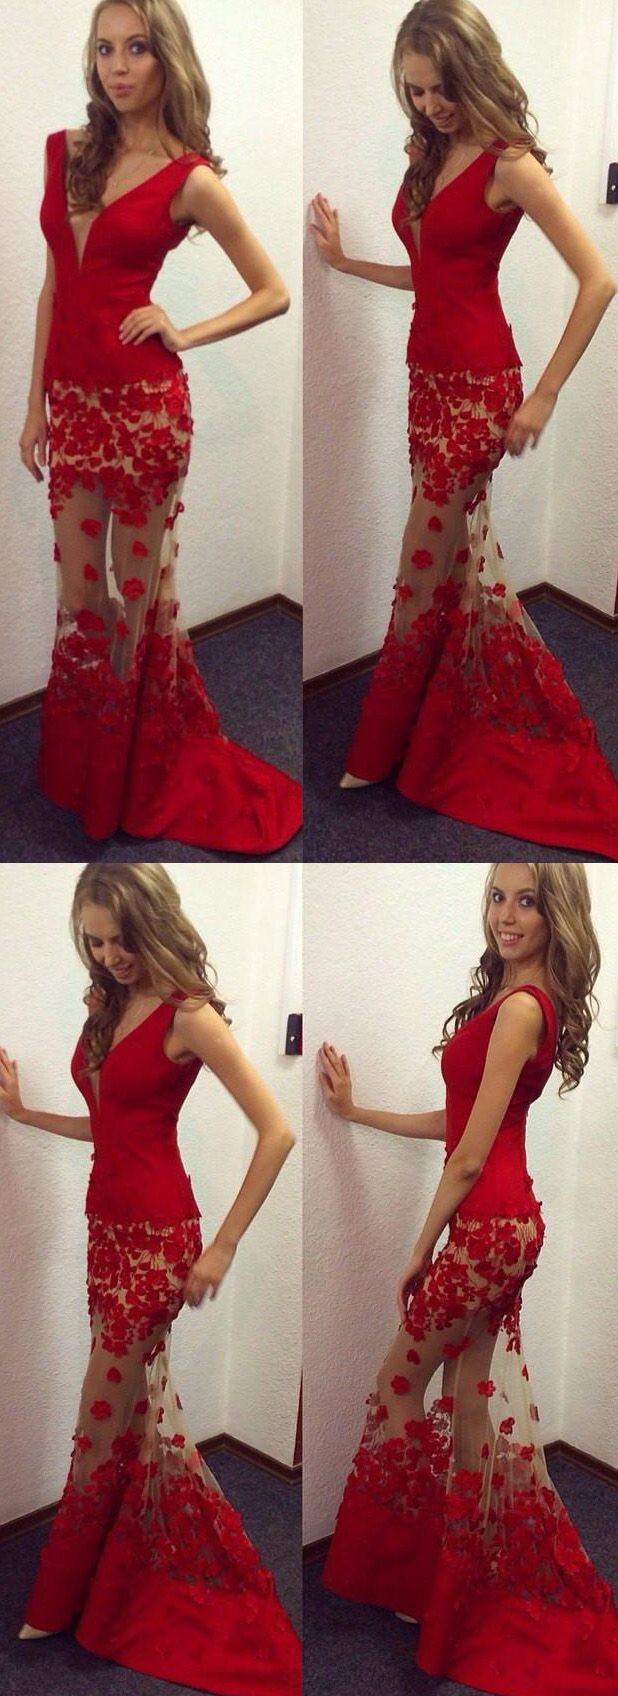 Red prom dresses long prom dresses sexy prom dresses long red